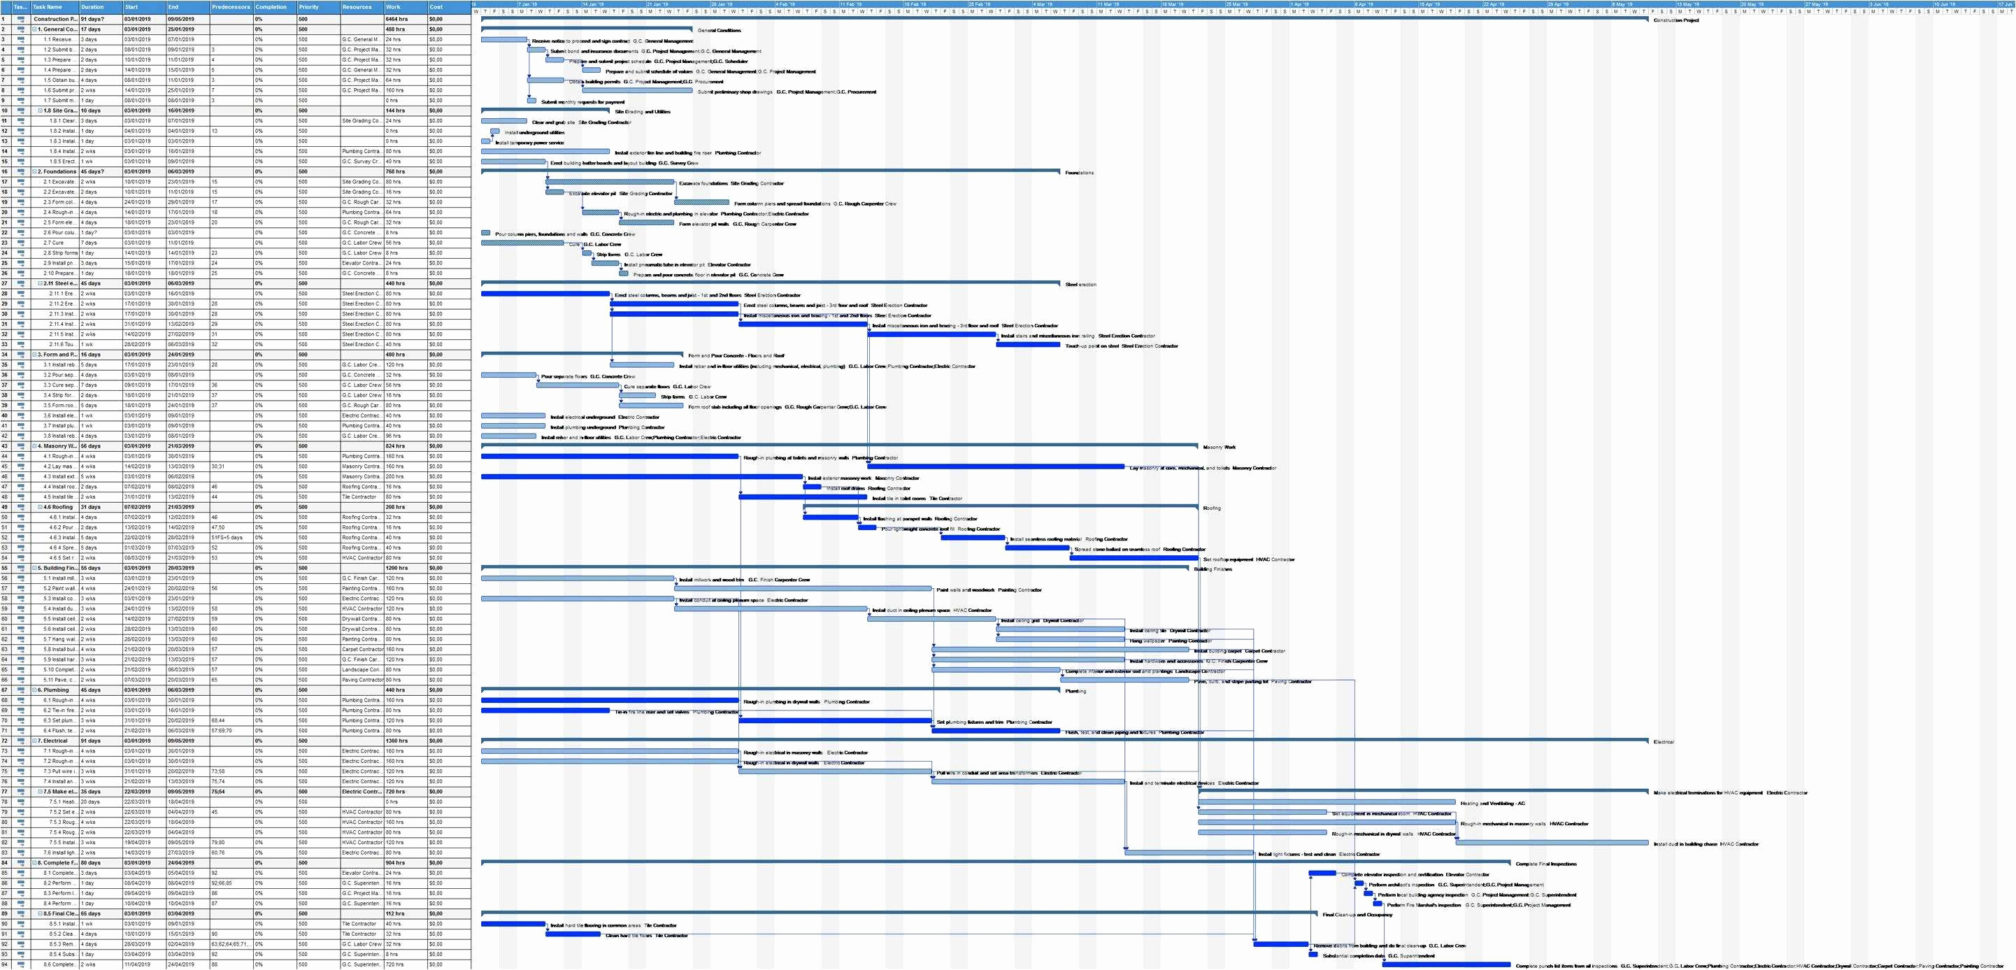 Google Docs Gantt Chart Best Of Google Doc Gantt Chart New Google Inside Gantt Chart Template Google Docs